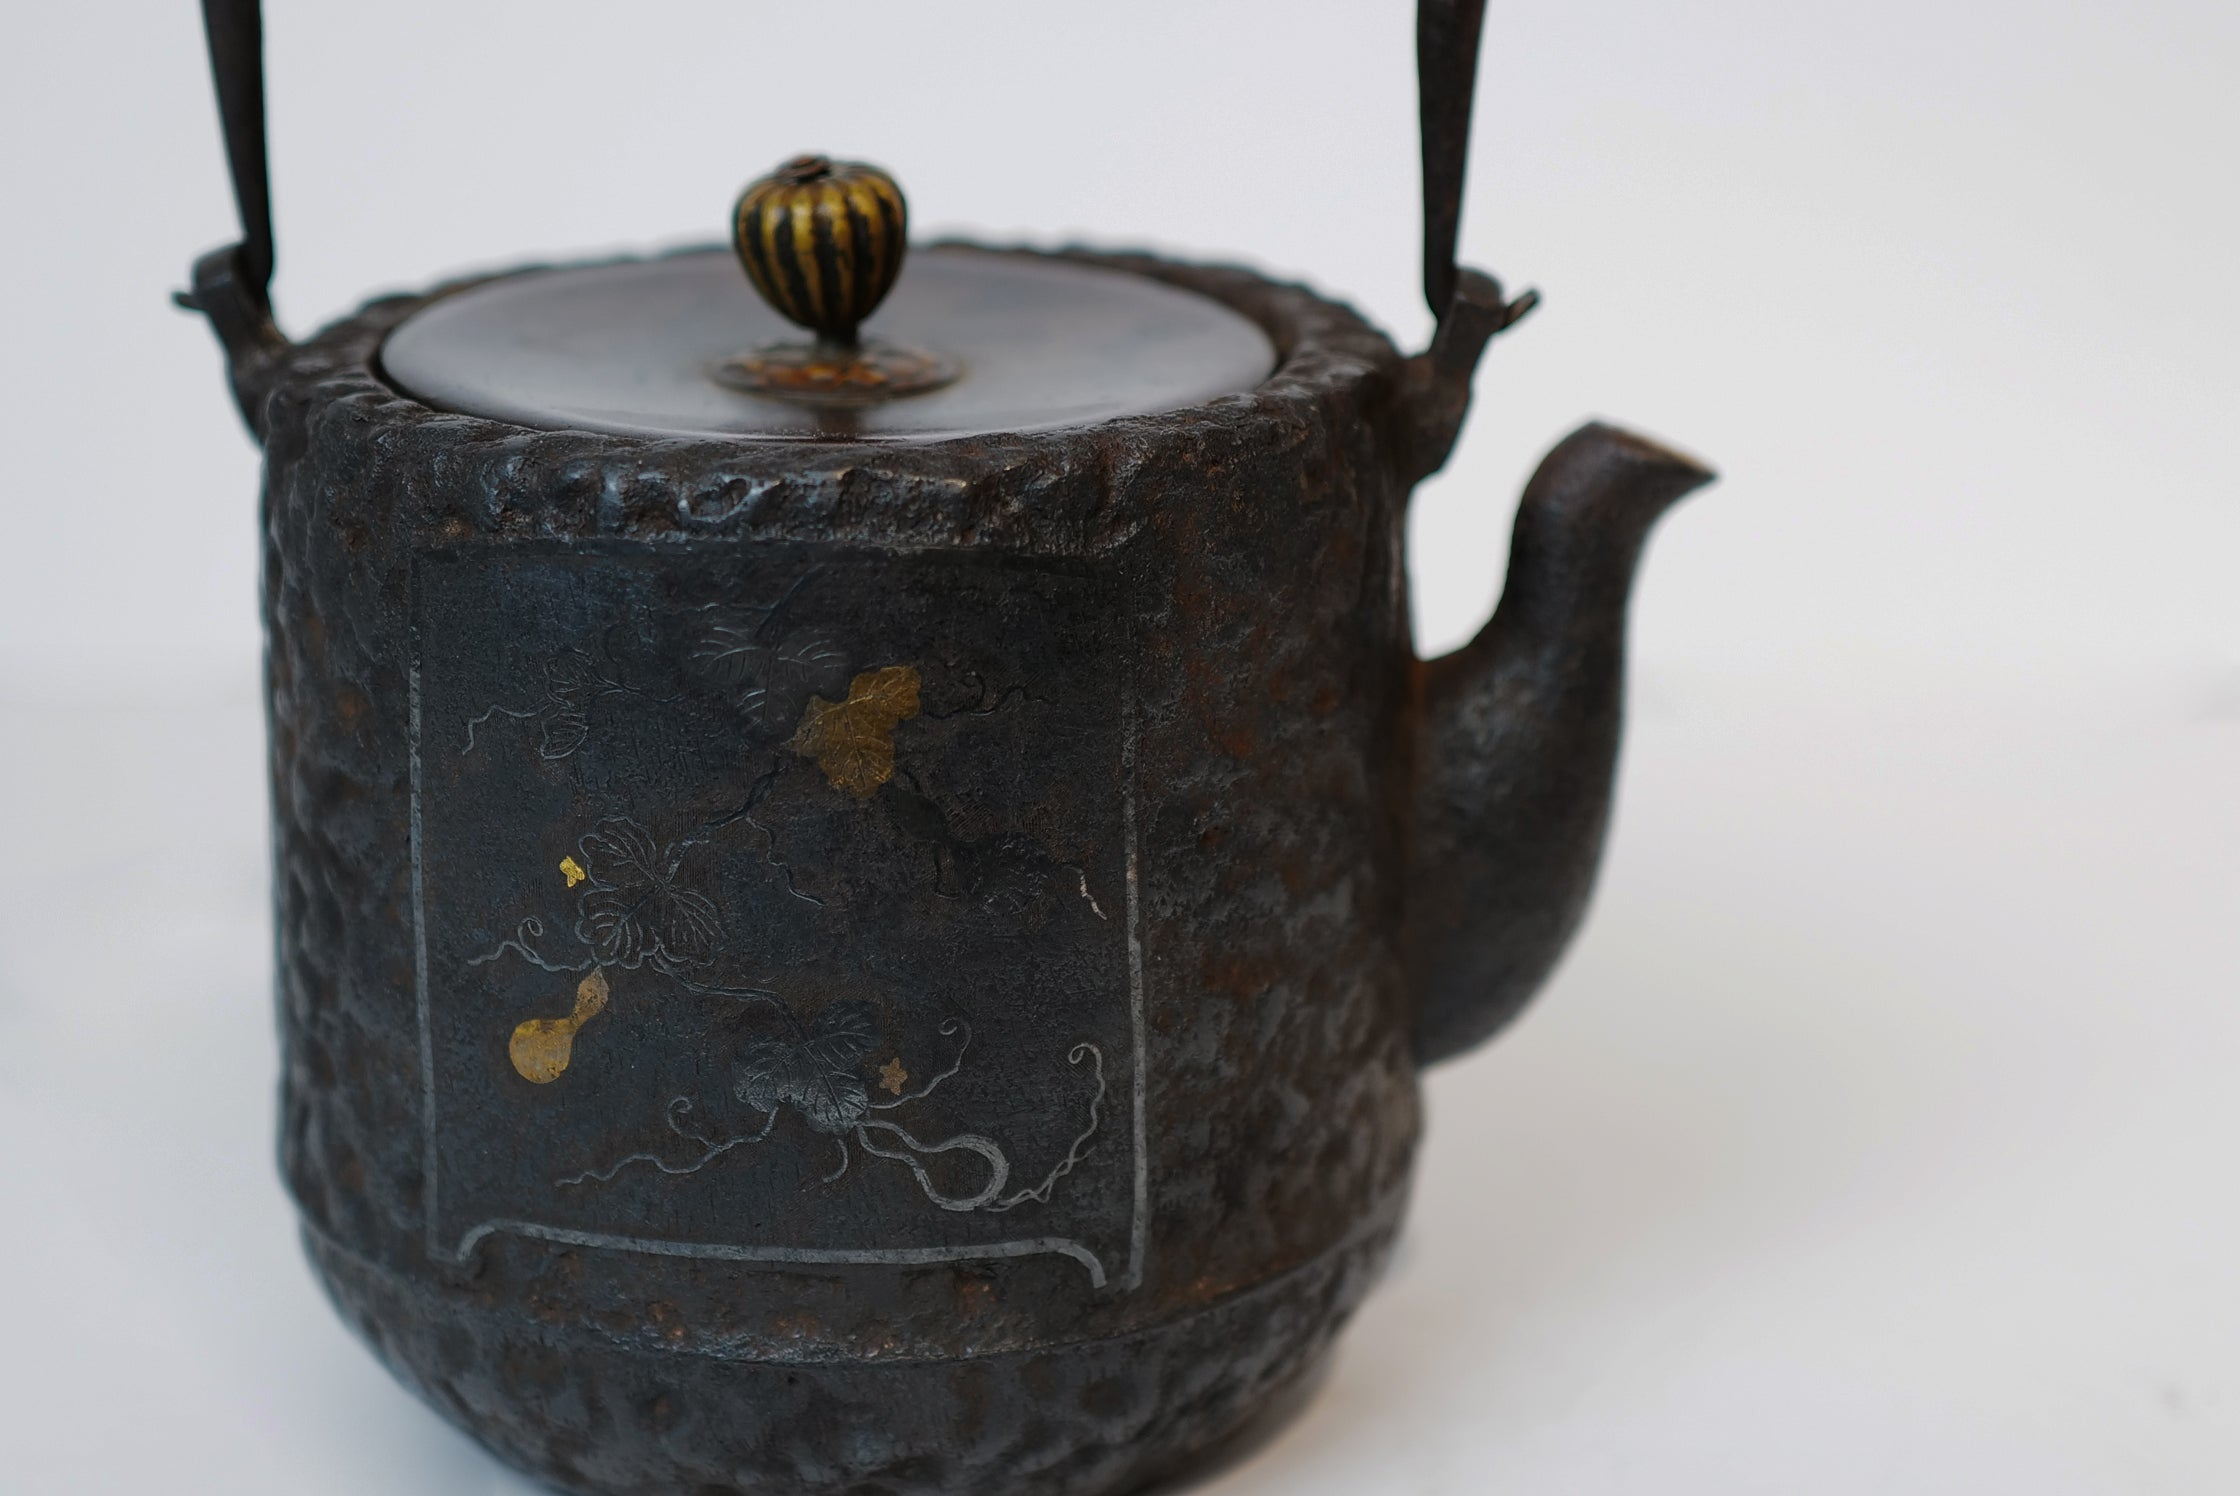 Iron Kettle Pot with Gold and Silver Inlaid Patterns 【精金堂 · 嵌金银葫芦纹】